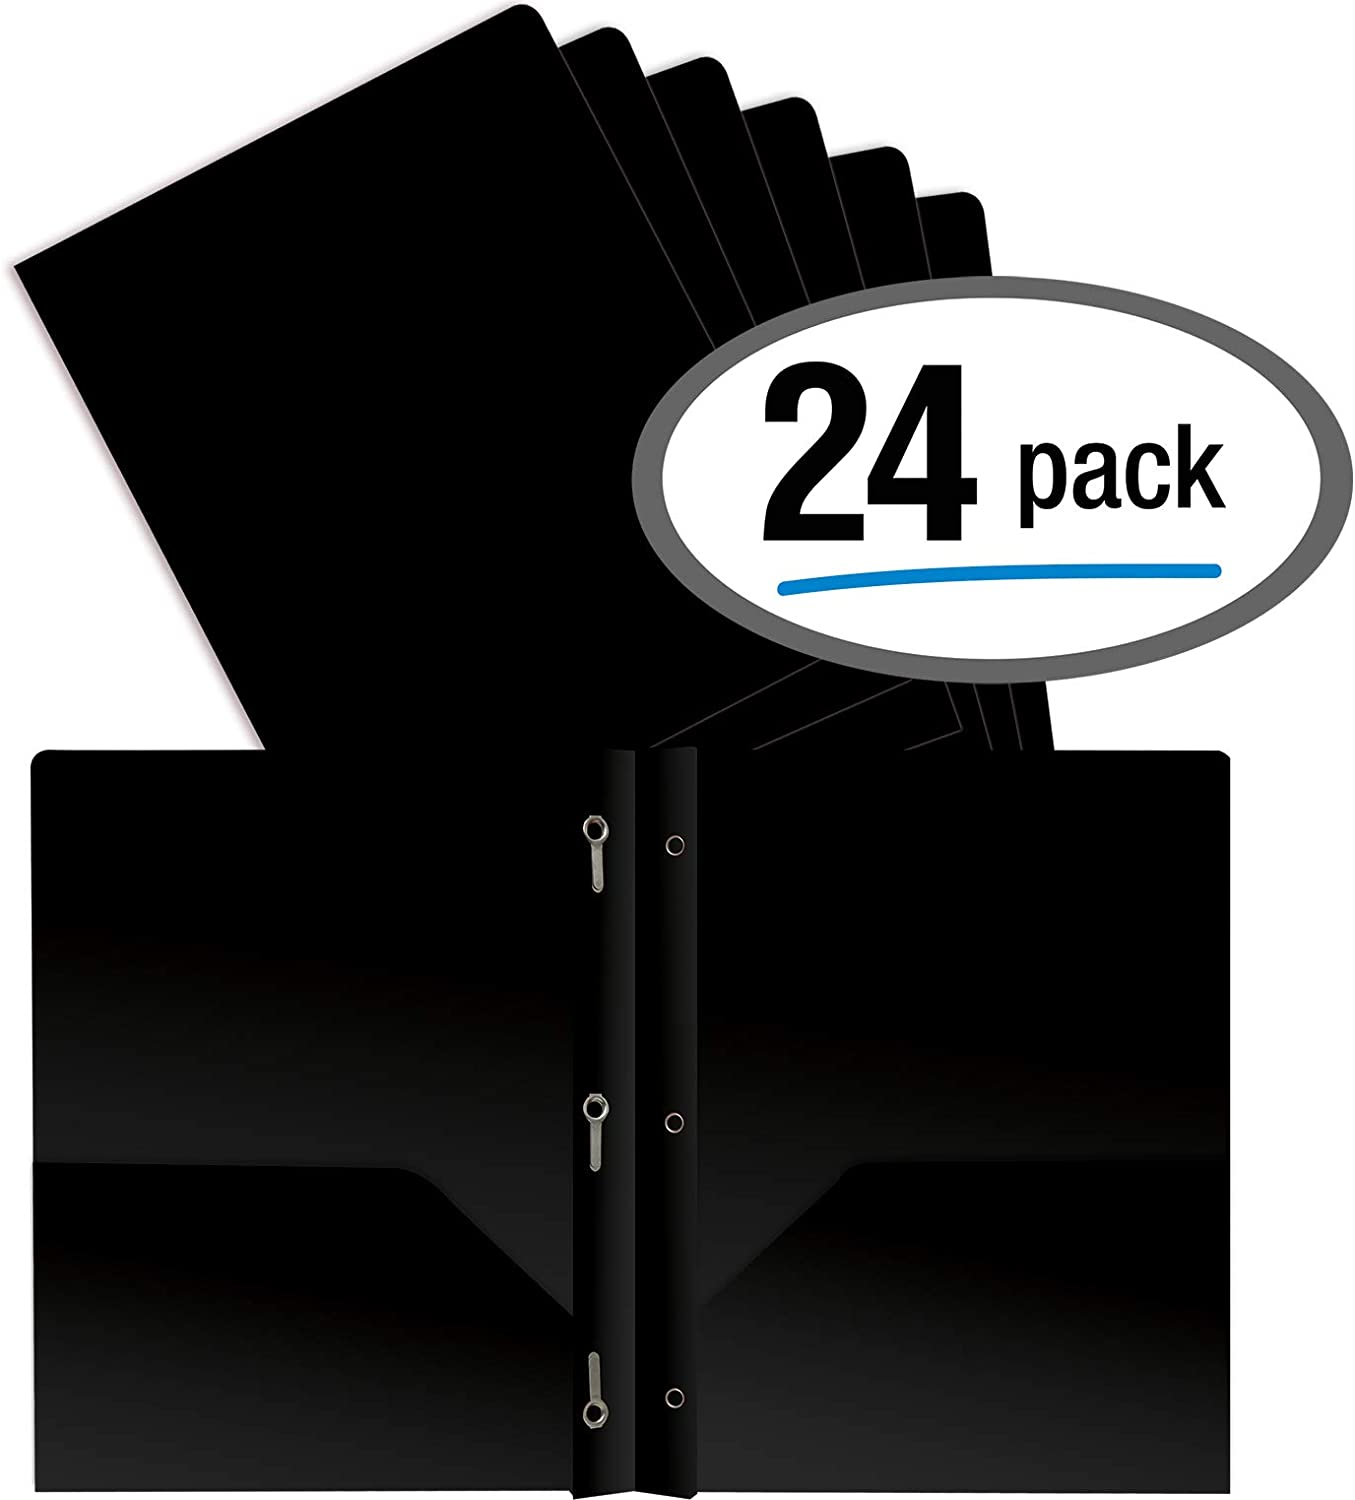 Better Office Products Black Plastic 2 Pocket Folders with Prongs, Heavyweight, Letter Size Poly Folders, 24 Pack, with 3 Metal Prongs Fastener Clips, Black